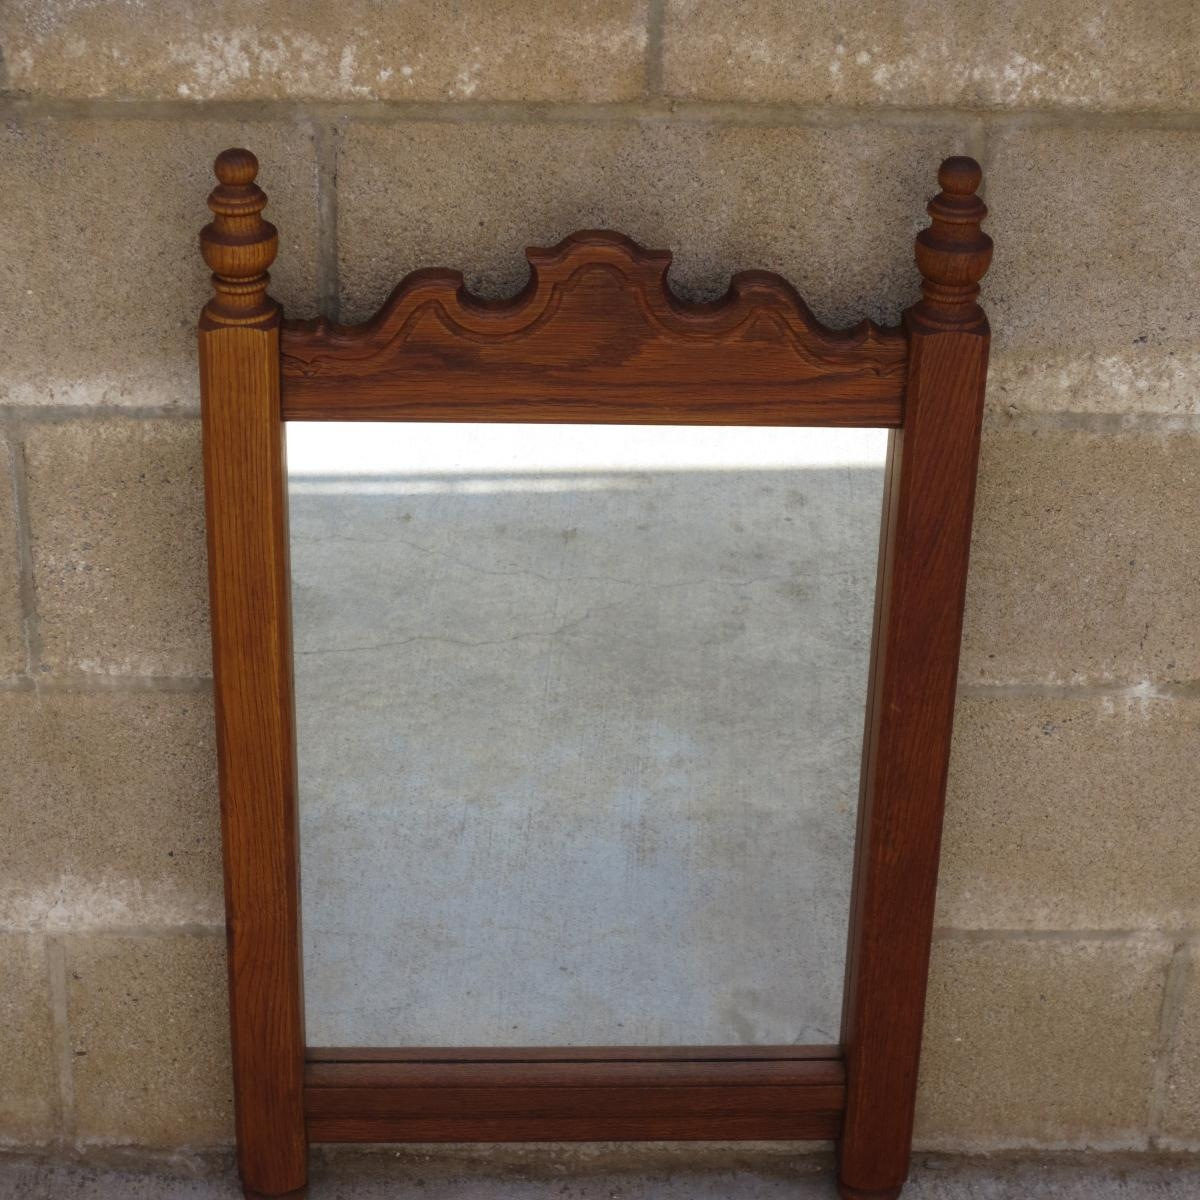 Antique Mirrors, Vintage Mirrors, Antique Wall Mirrors, And French With Regard To Antique Wall Mirror (Image 5 of 20)